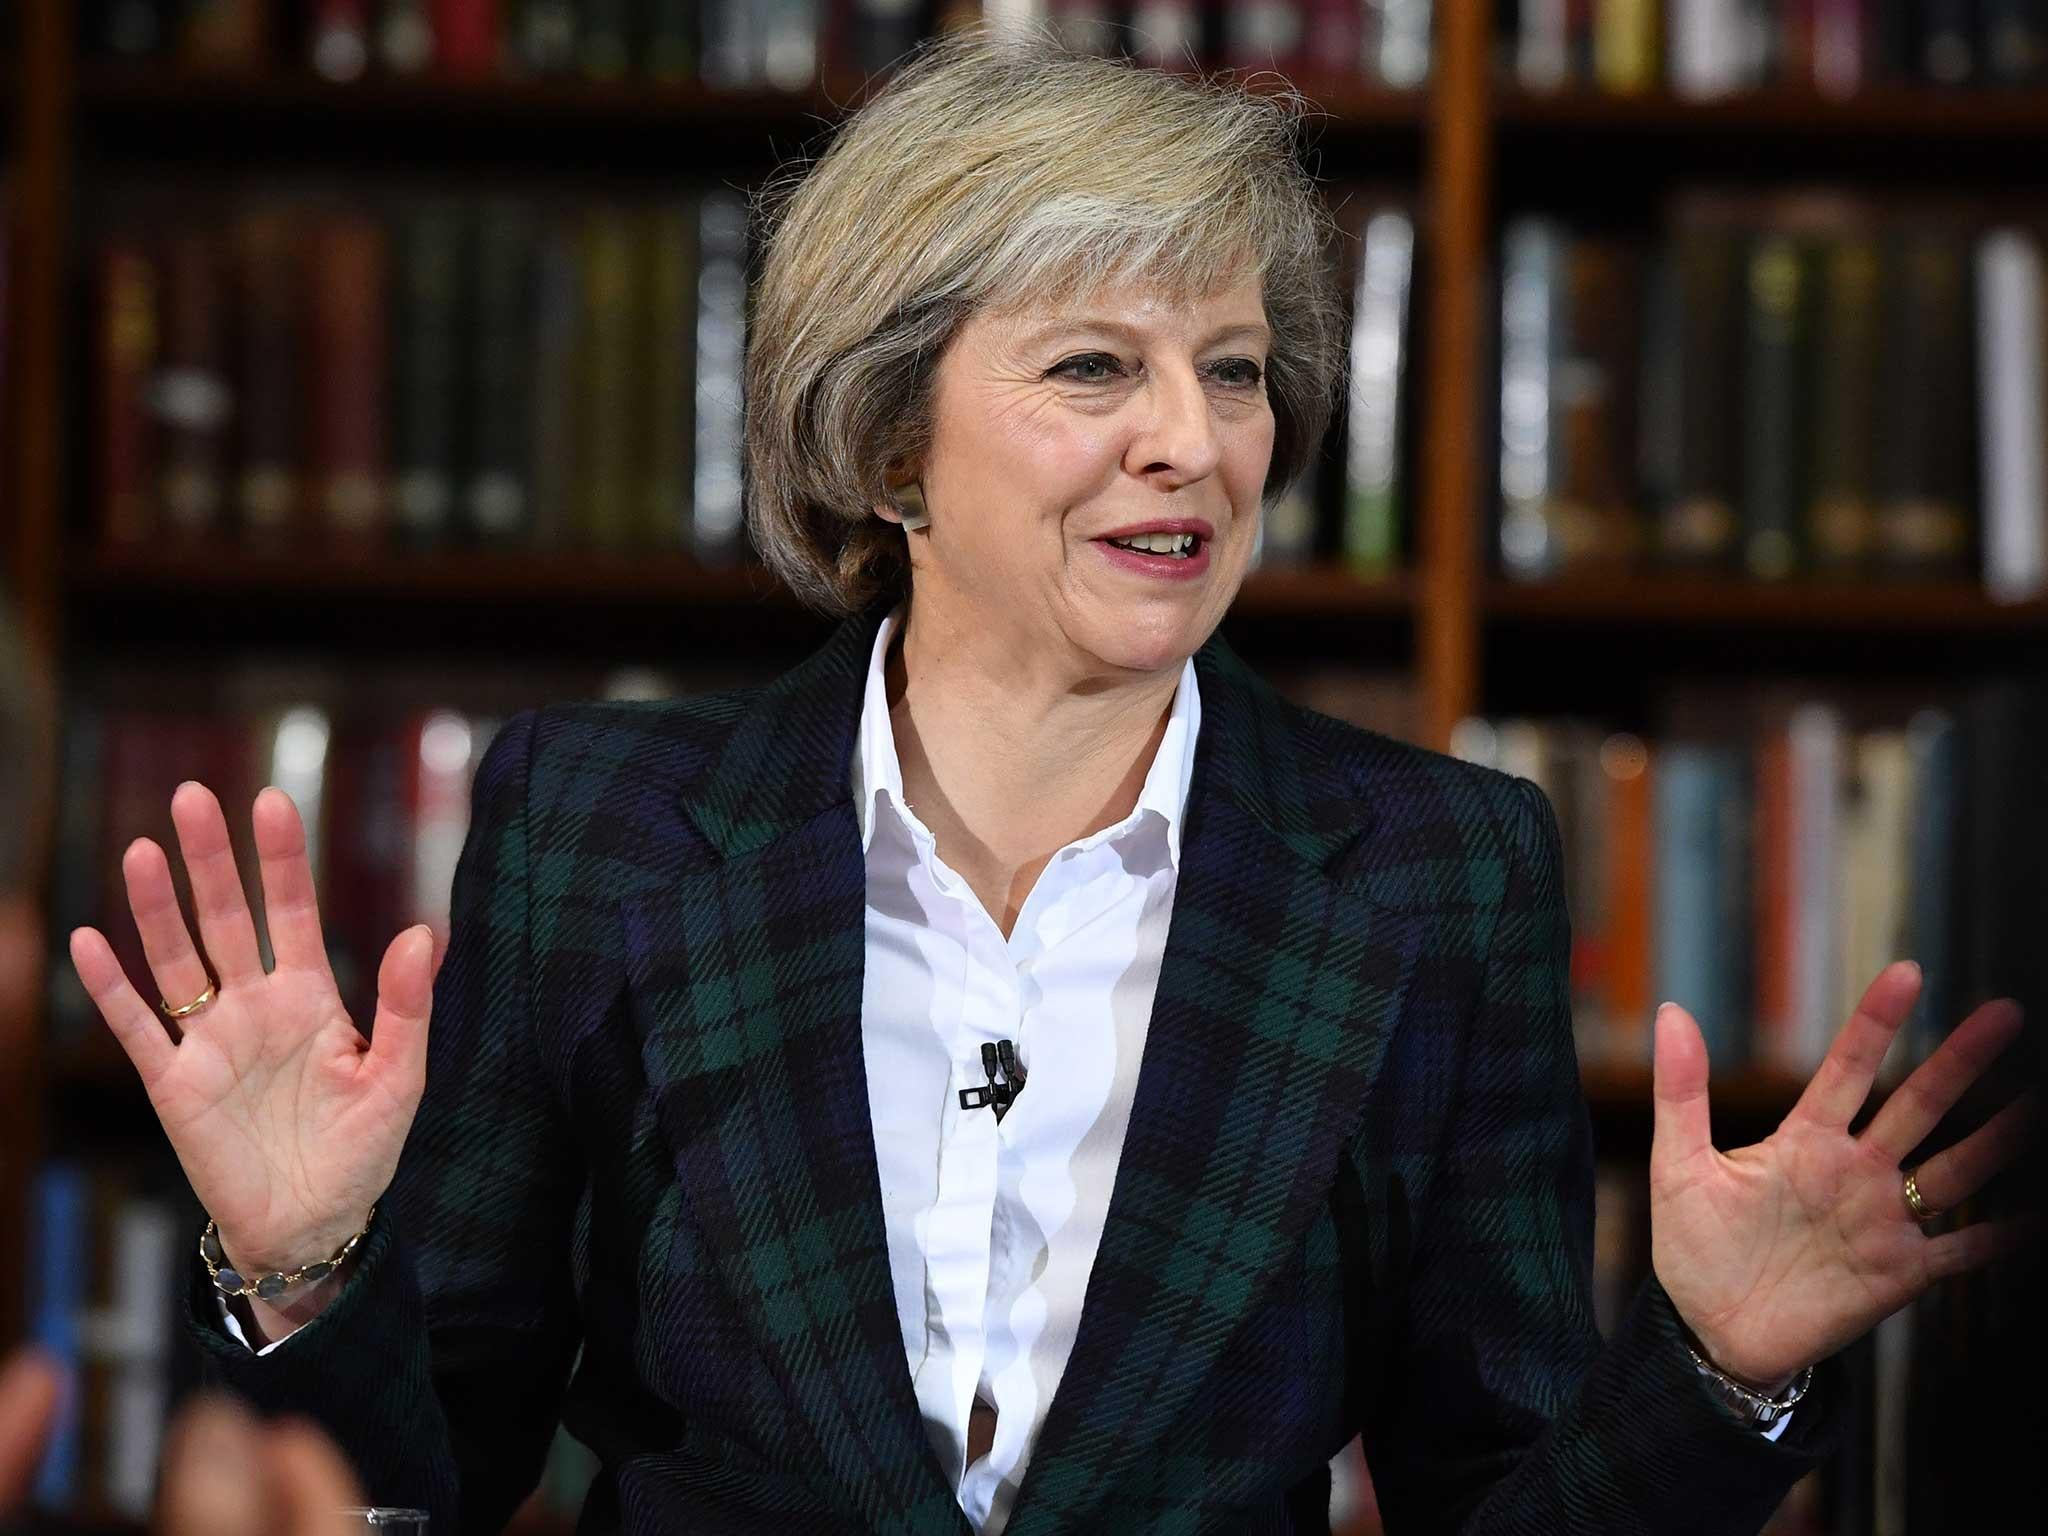 Theresa May, Primo Ministro inglese (static.independent.co.uk)